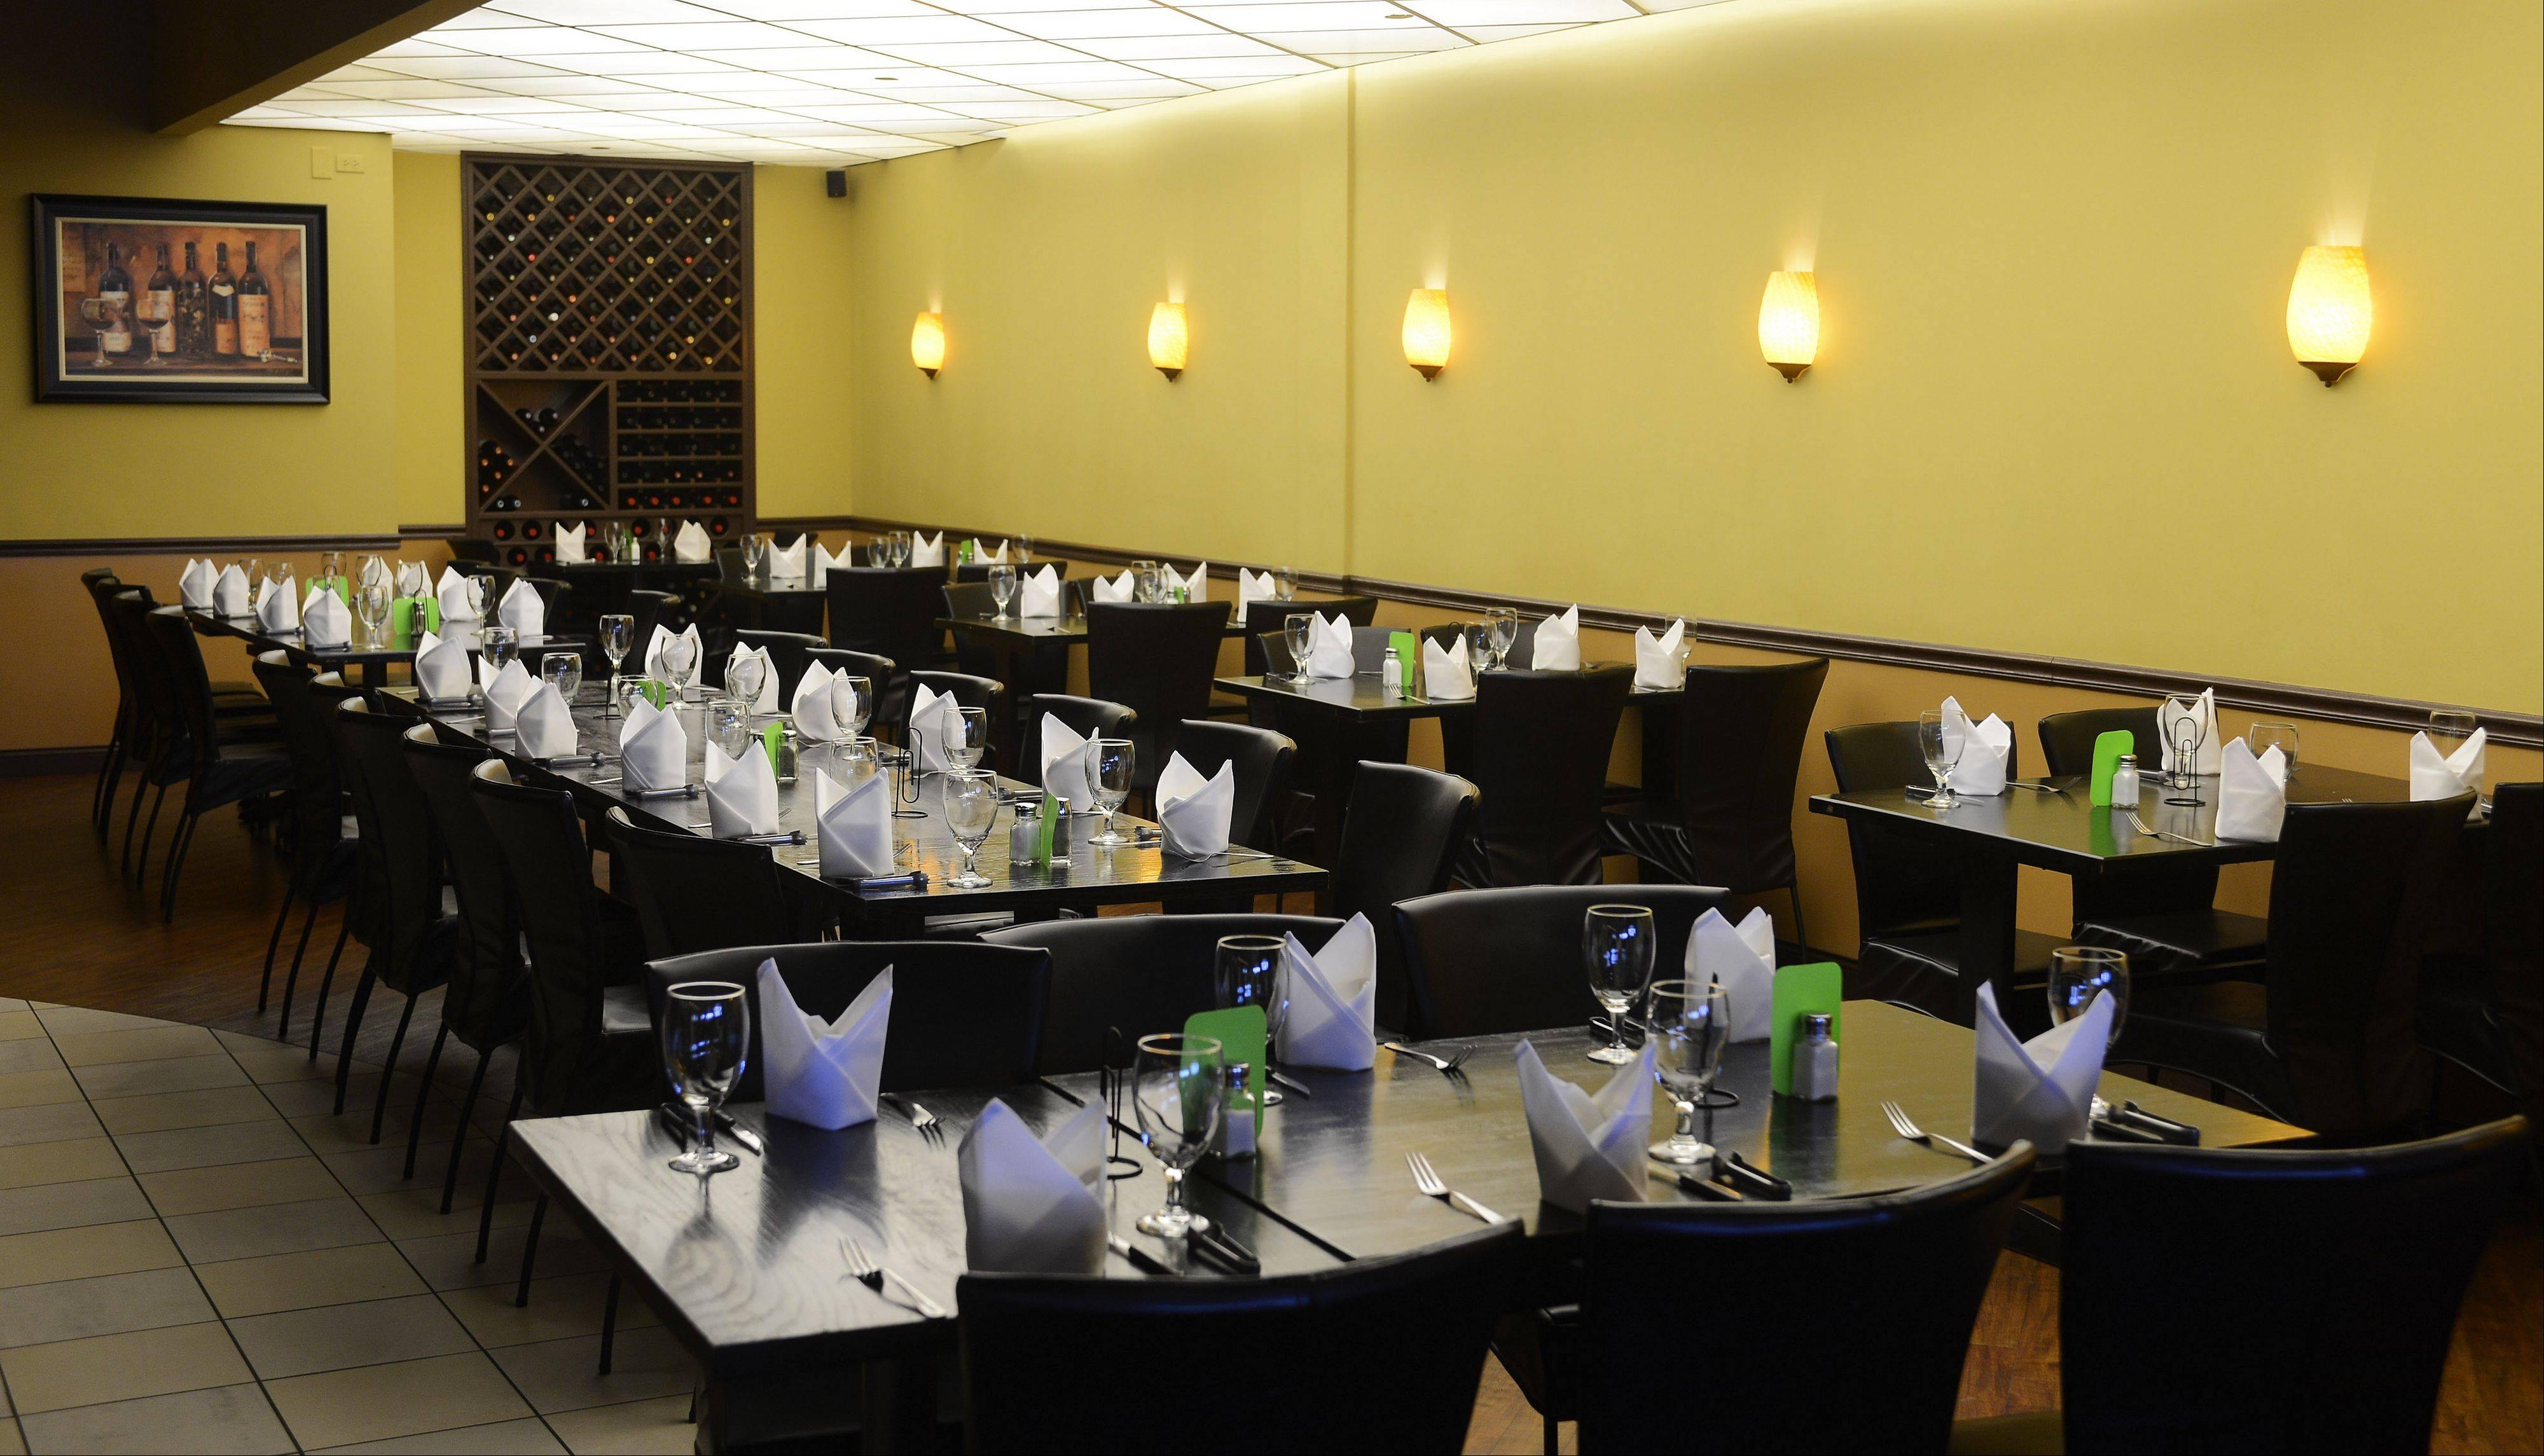 The dining room is inviting at Brazil Express.